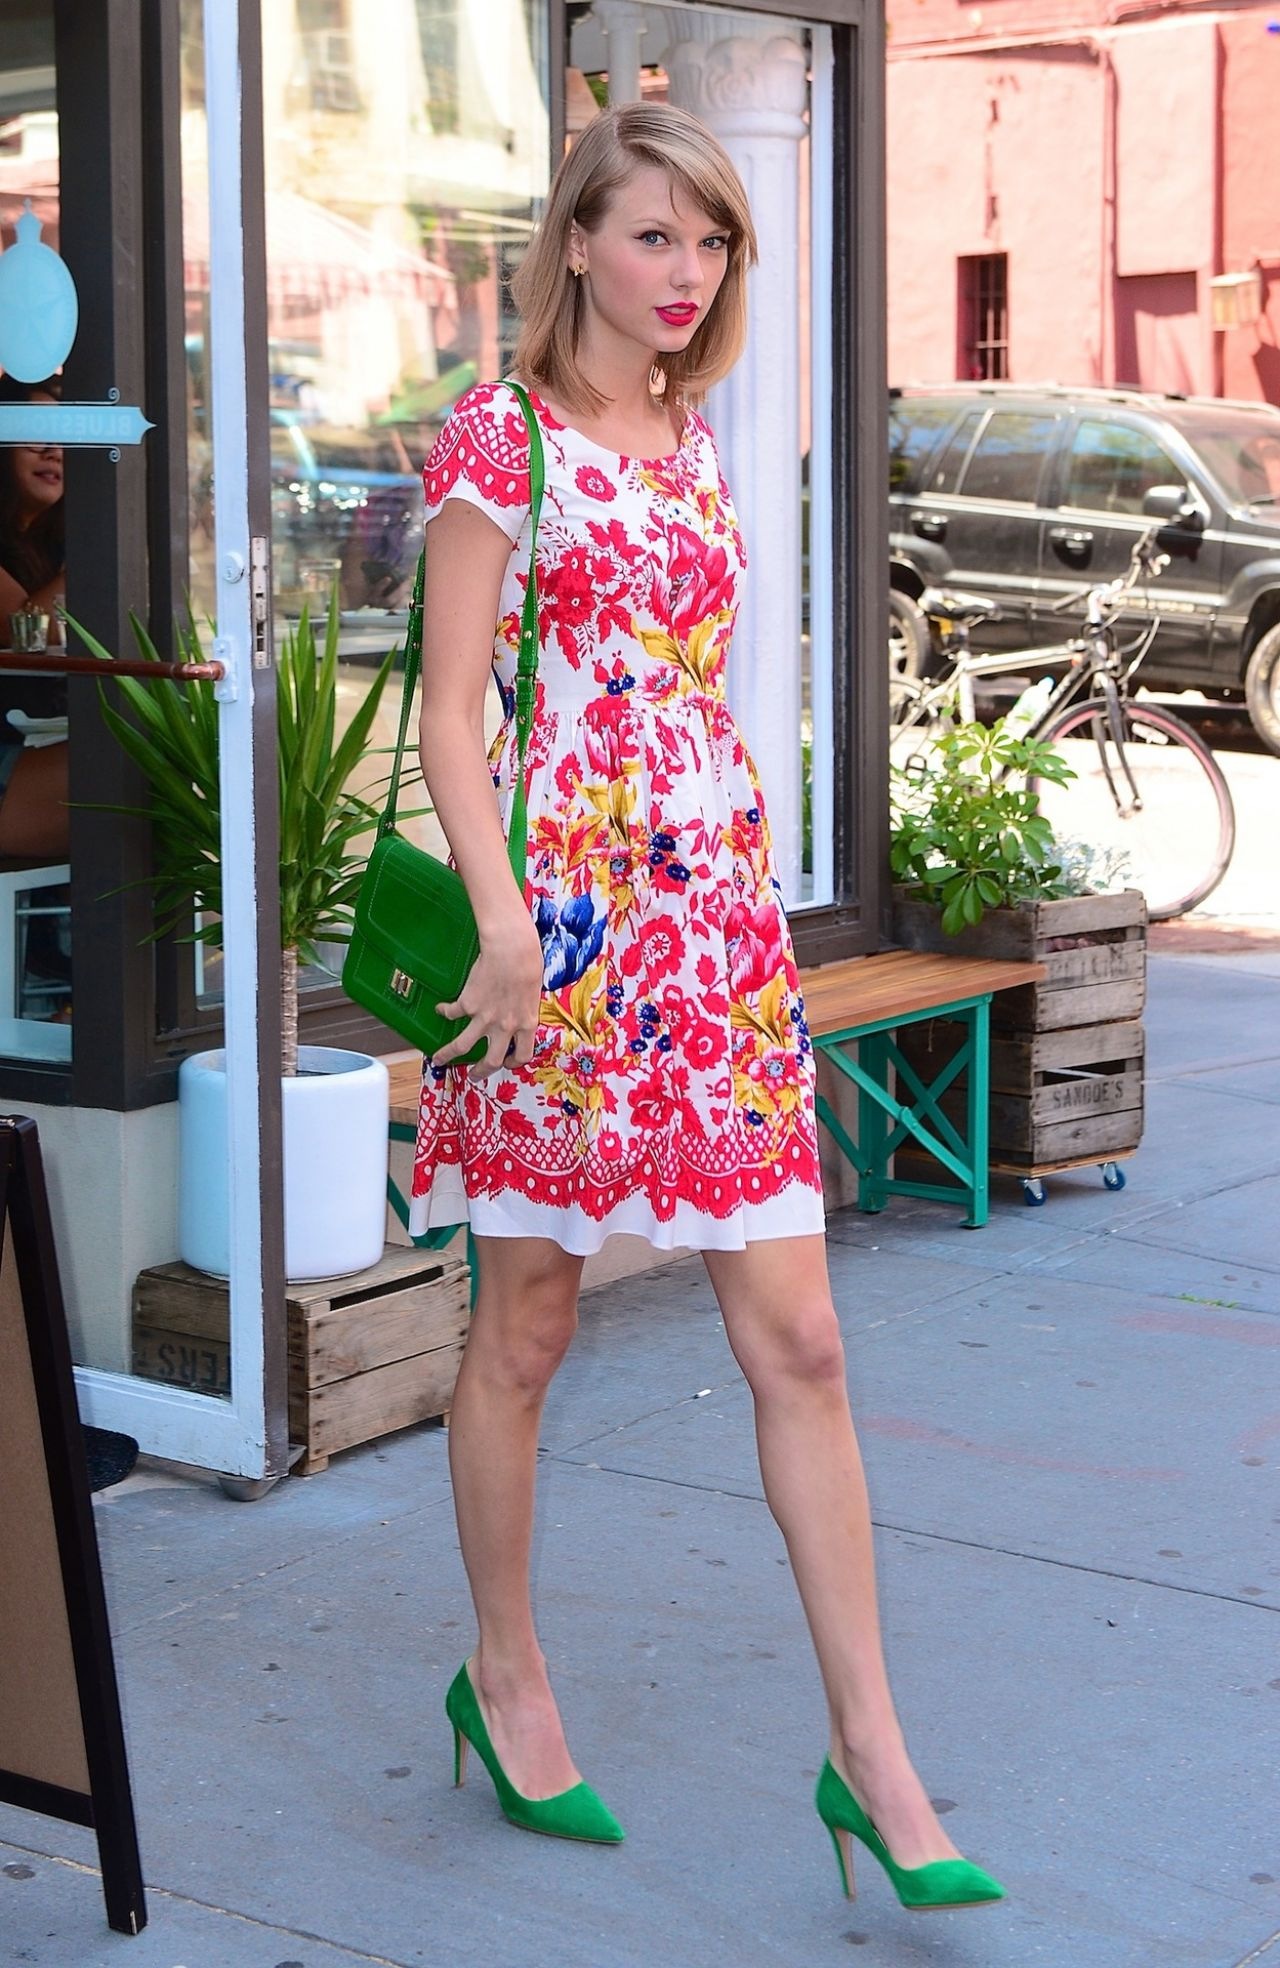 Taylor swift style 2shared